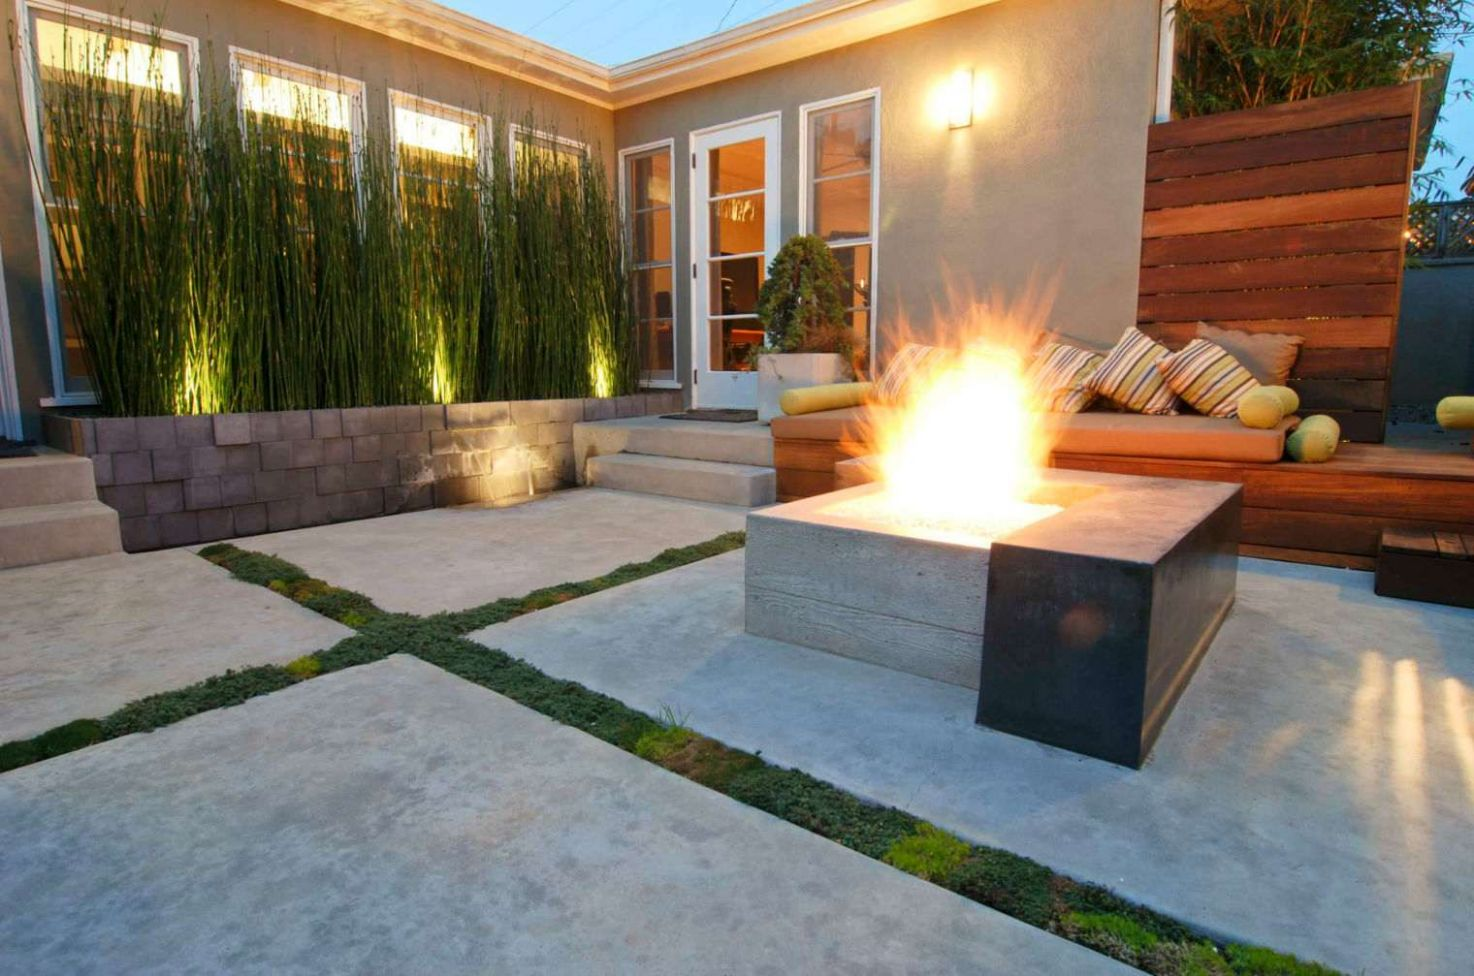 11 Beautiful Concrete Patio Ideas and Designs